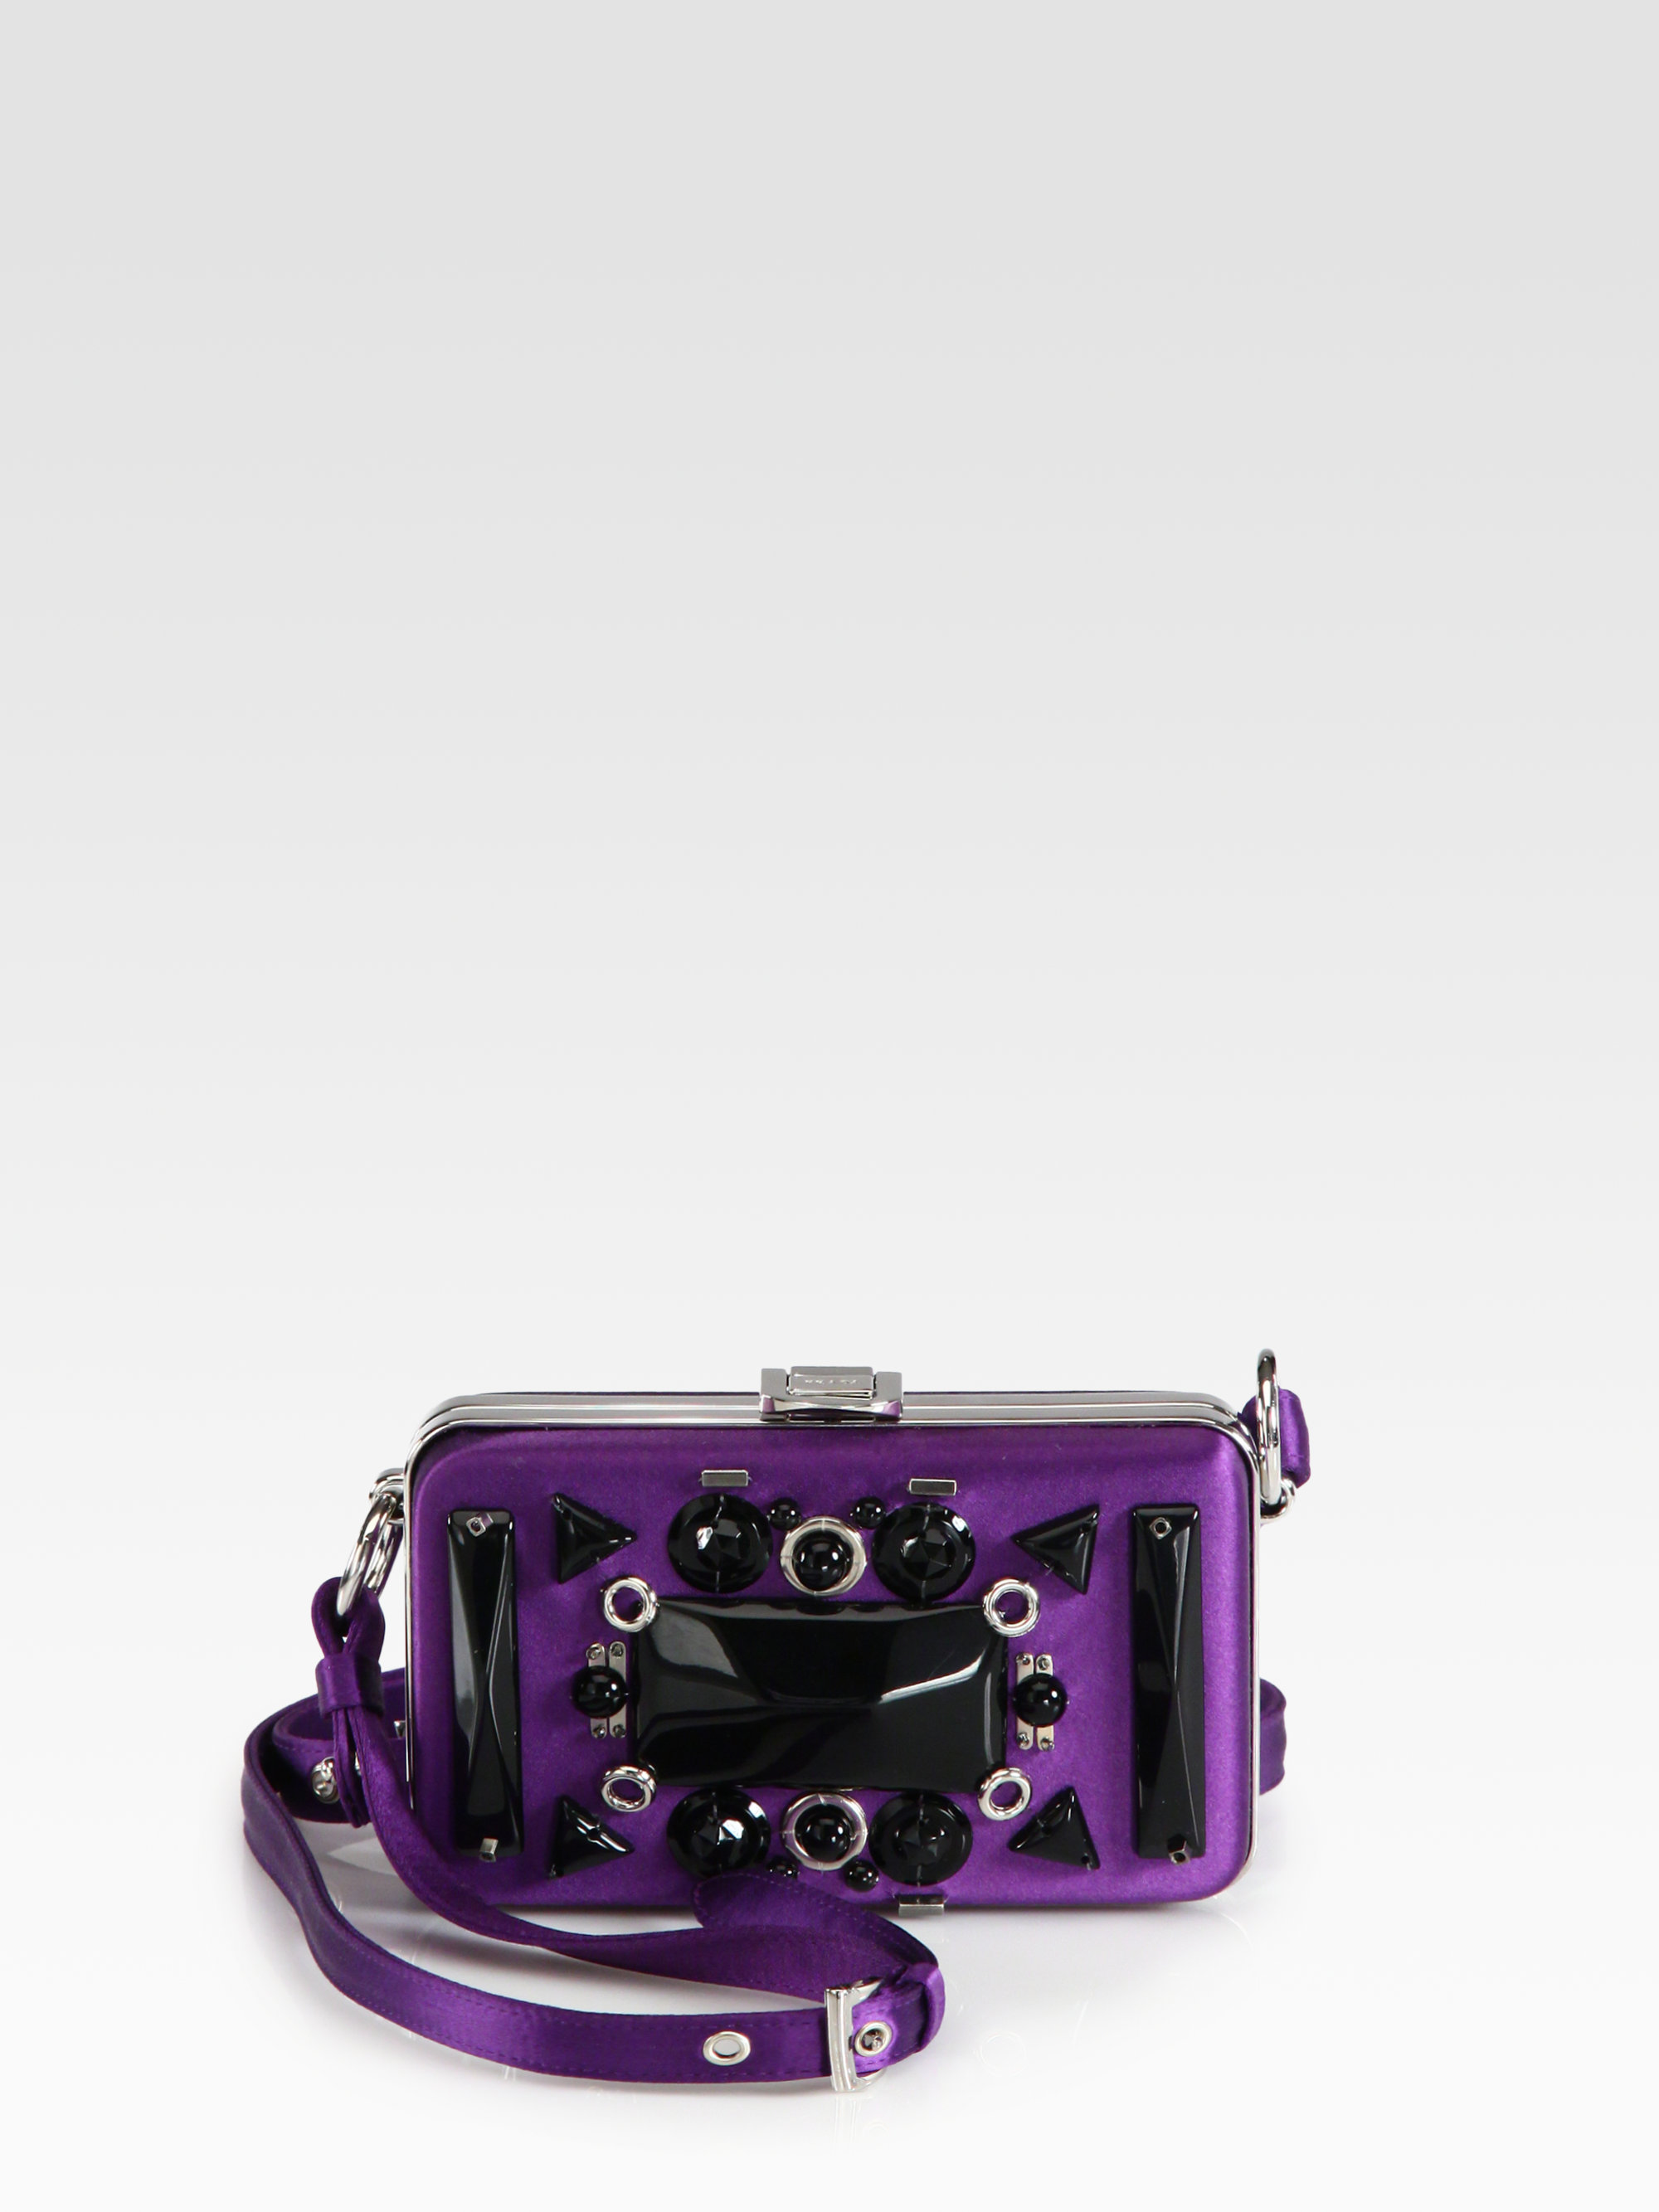 Prada Raso Ricamo Satin Box Clutch in Purple (violet) | Lyst